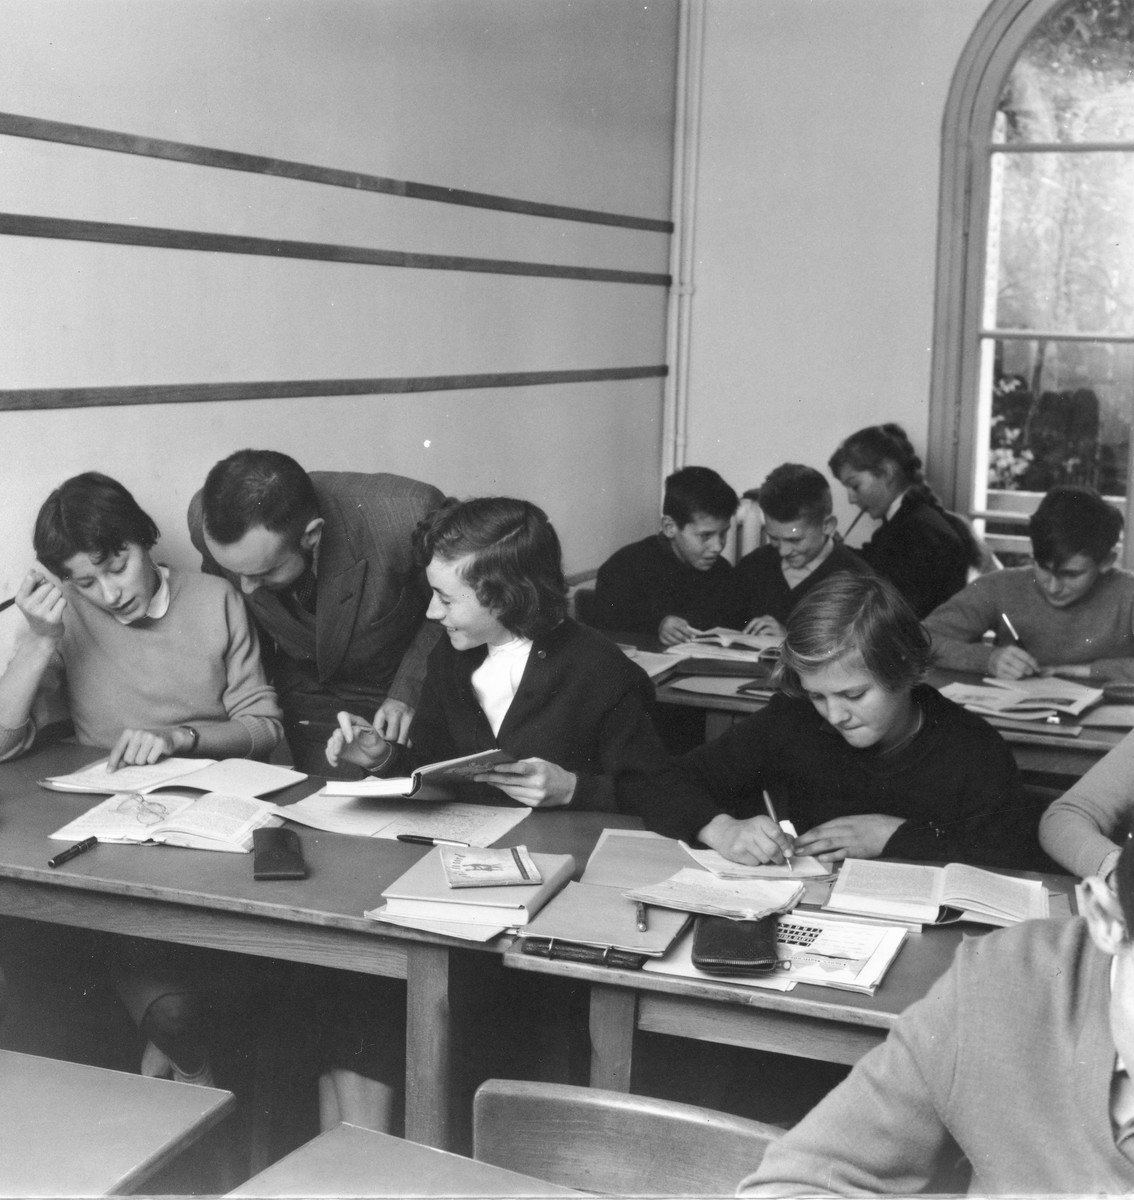 Children study at their desks in a classroom of a postwar OSE home, [possibly Fontenay-aux-Roses].